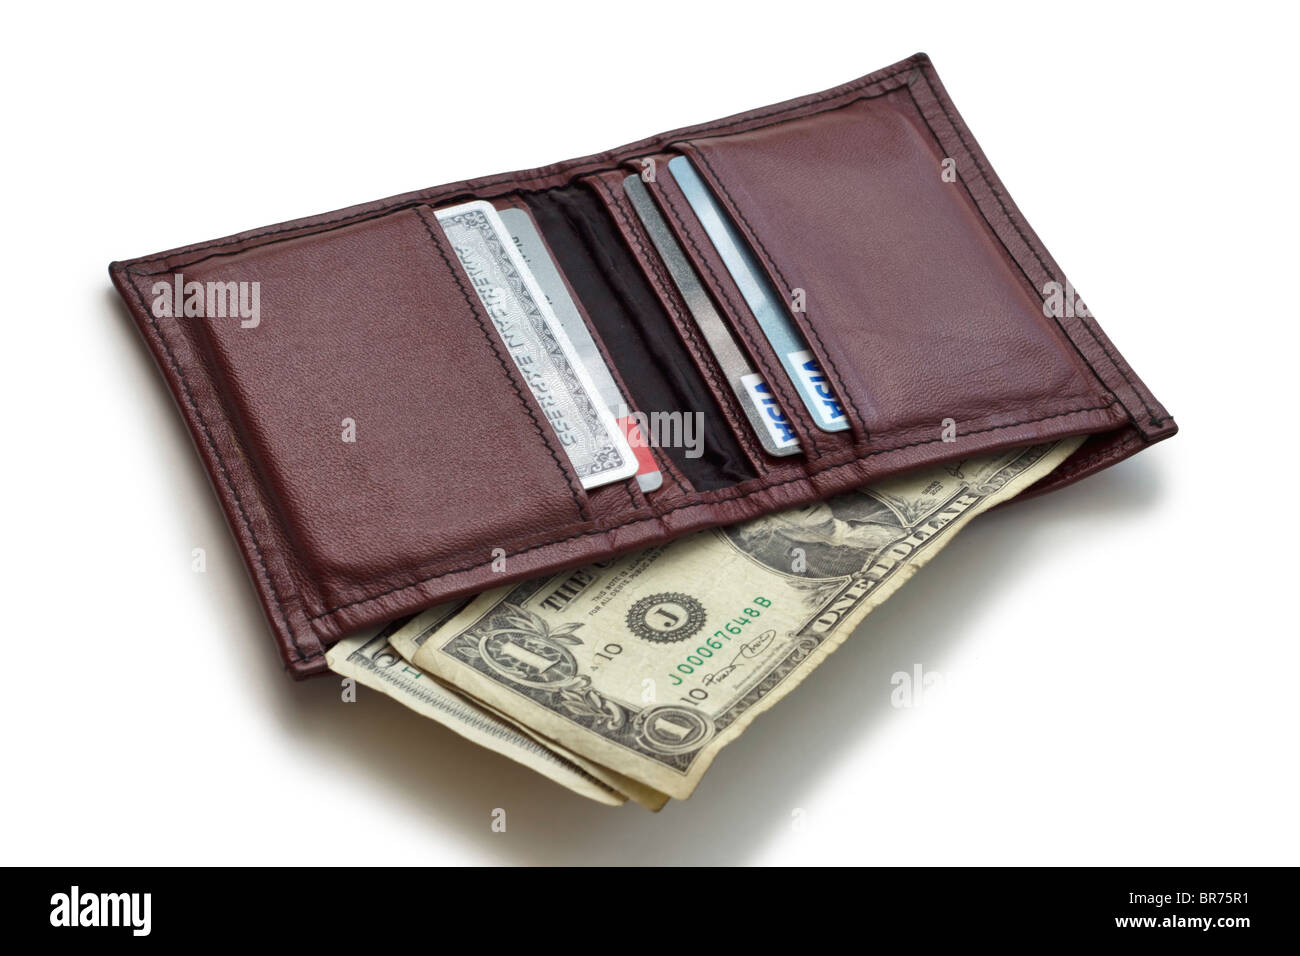 Wallet with money and credit cards - Stock Image